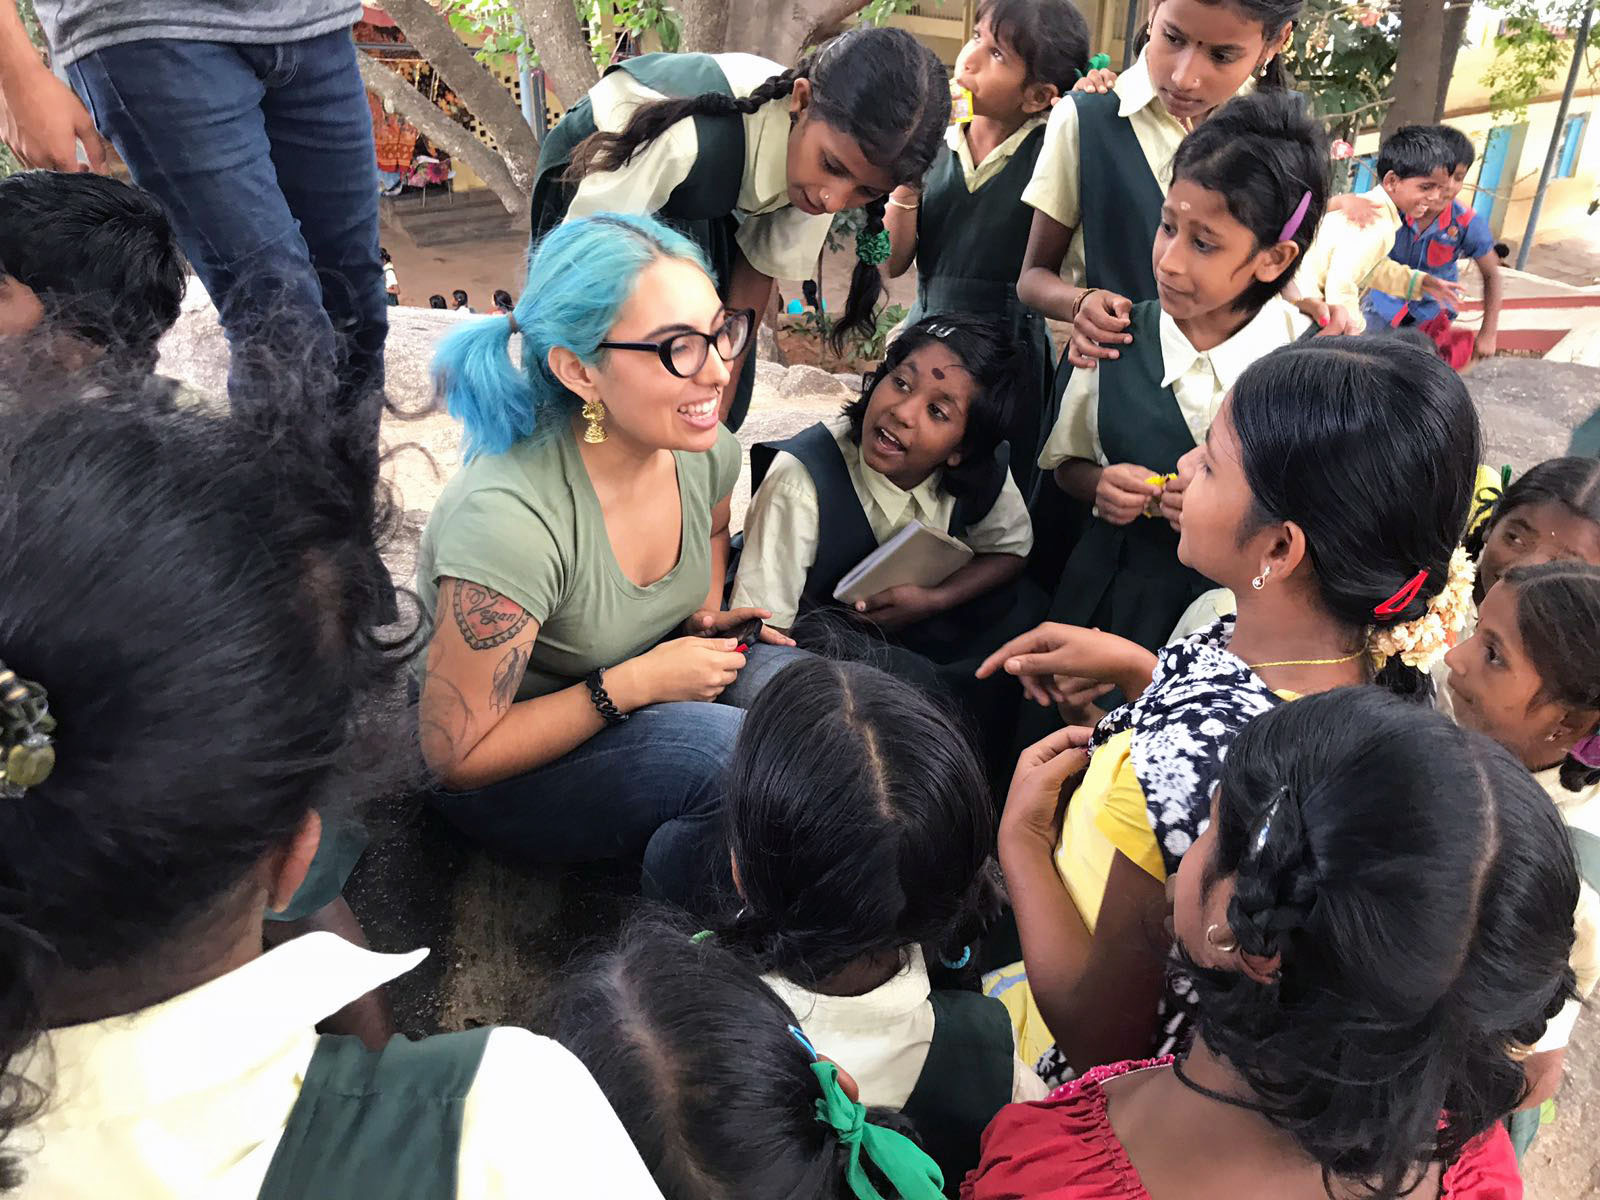 Smiling Cal State LA student sitting on the ground surrounded by listening young school students in India.